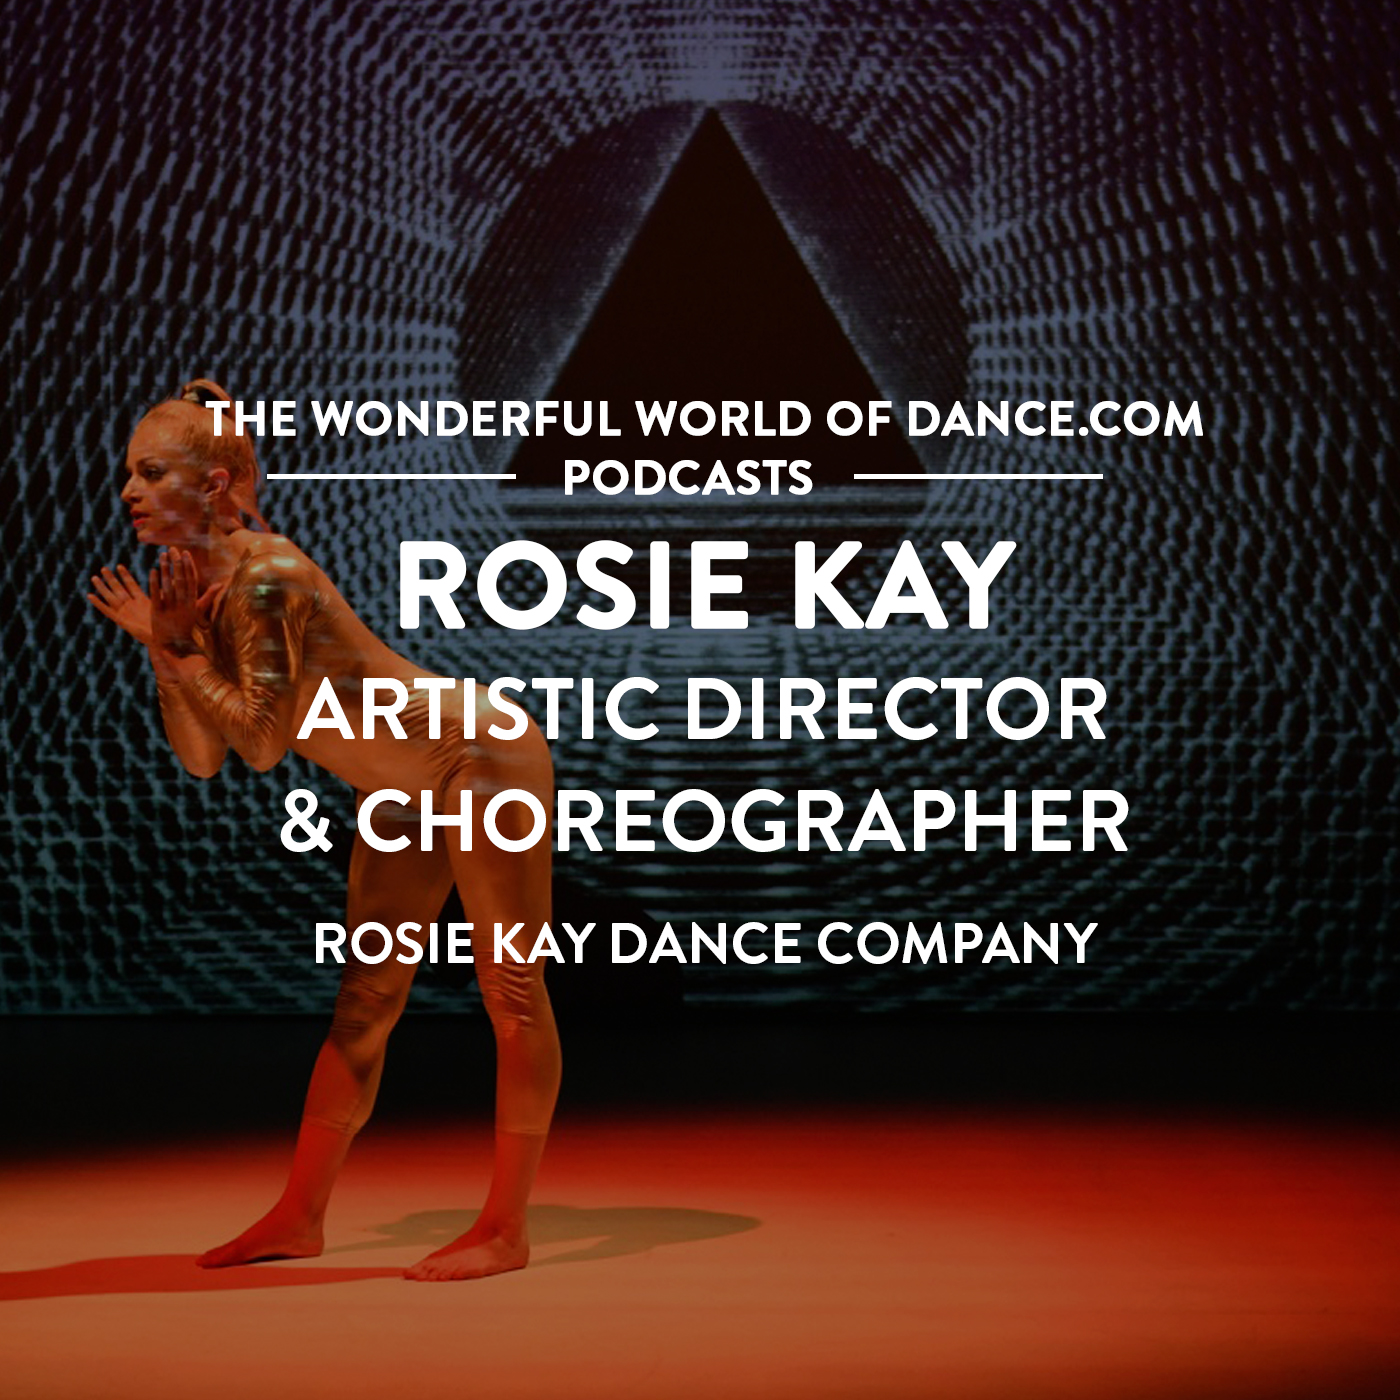 Rosie Kay Dance Company - Shelley Eva Haden in MK ULTRA - photography by Brian Slater